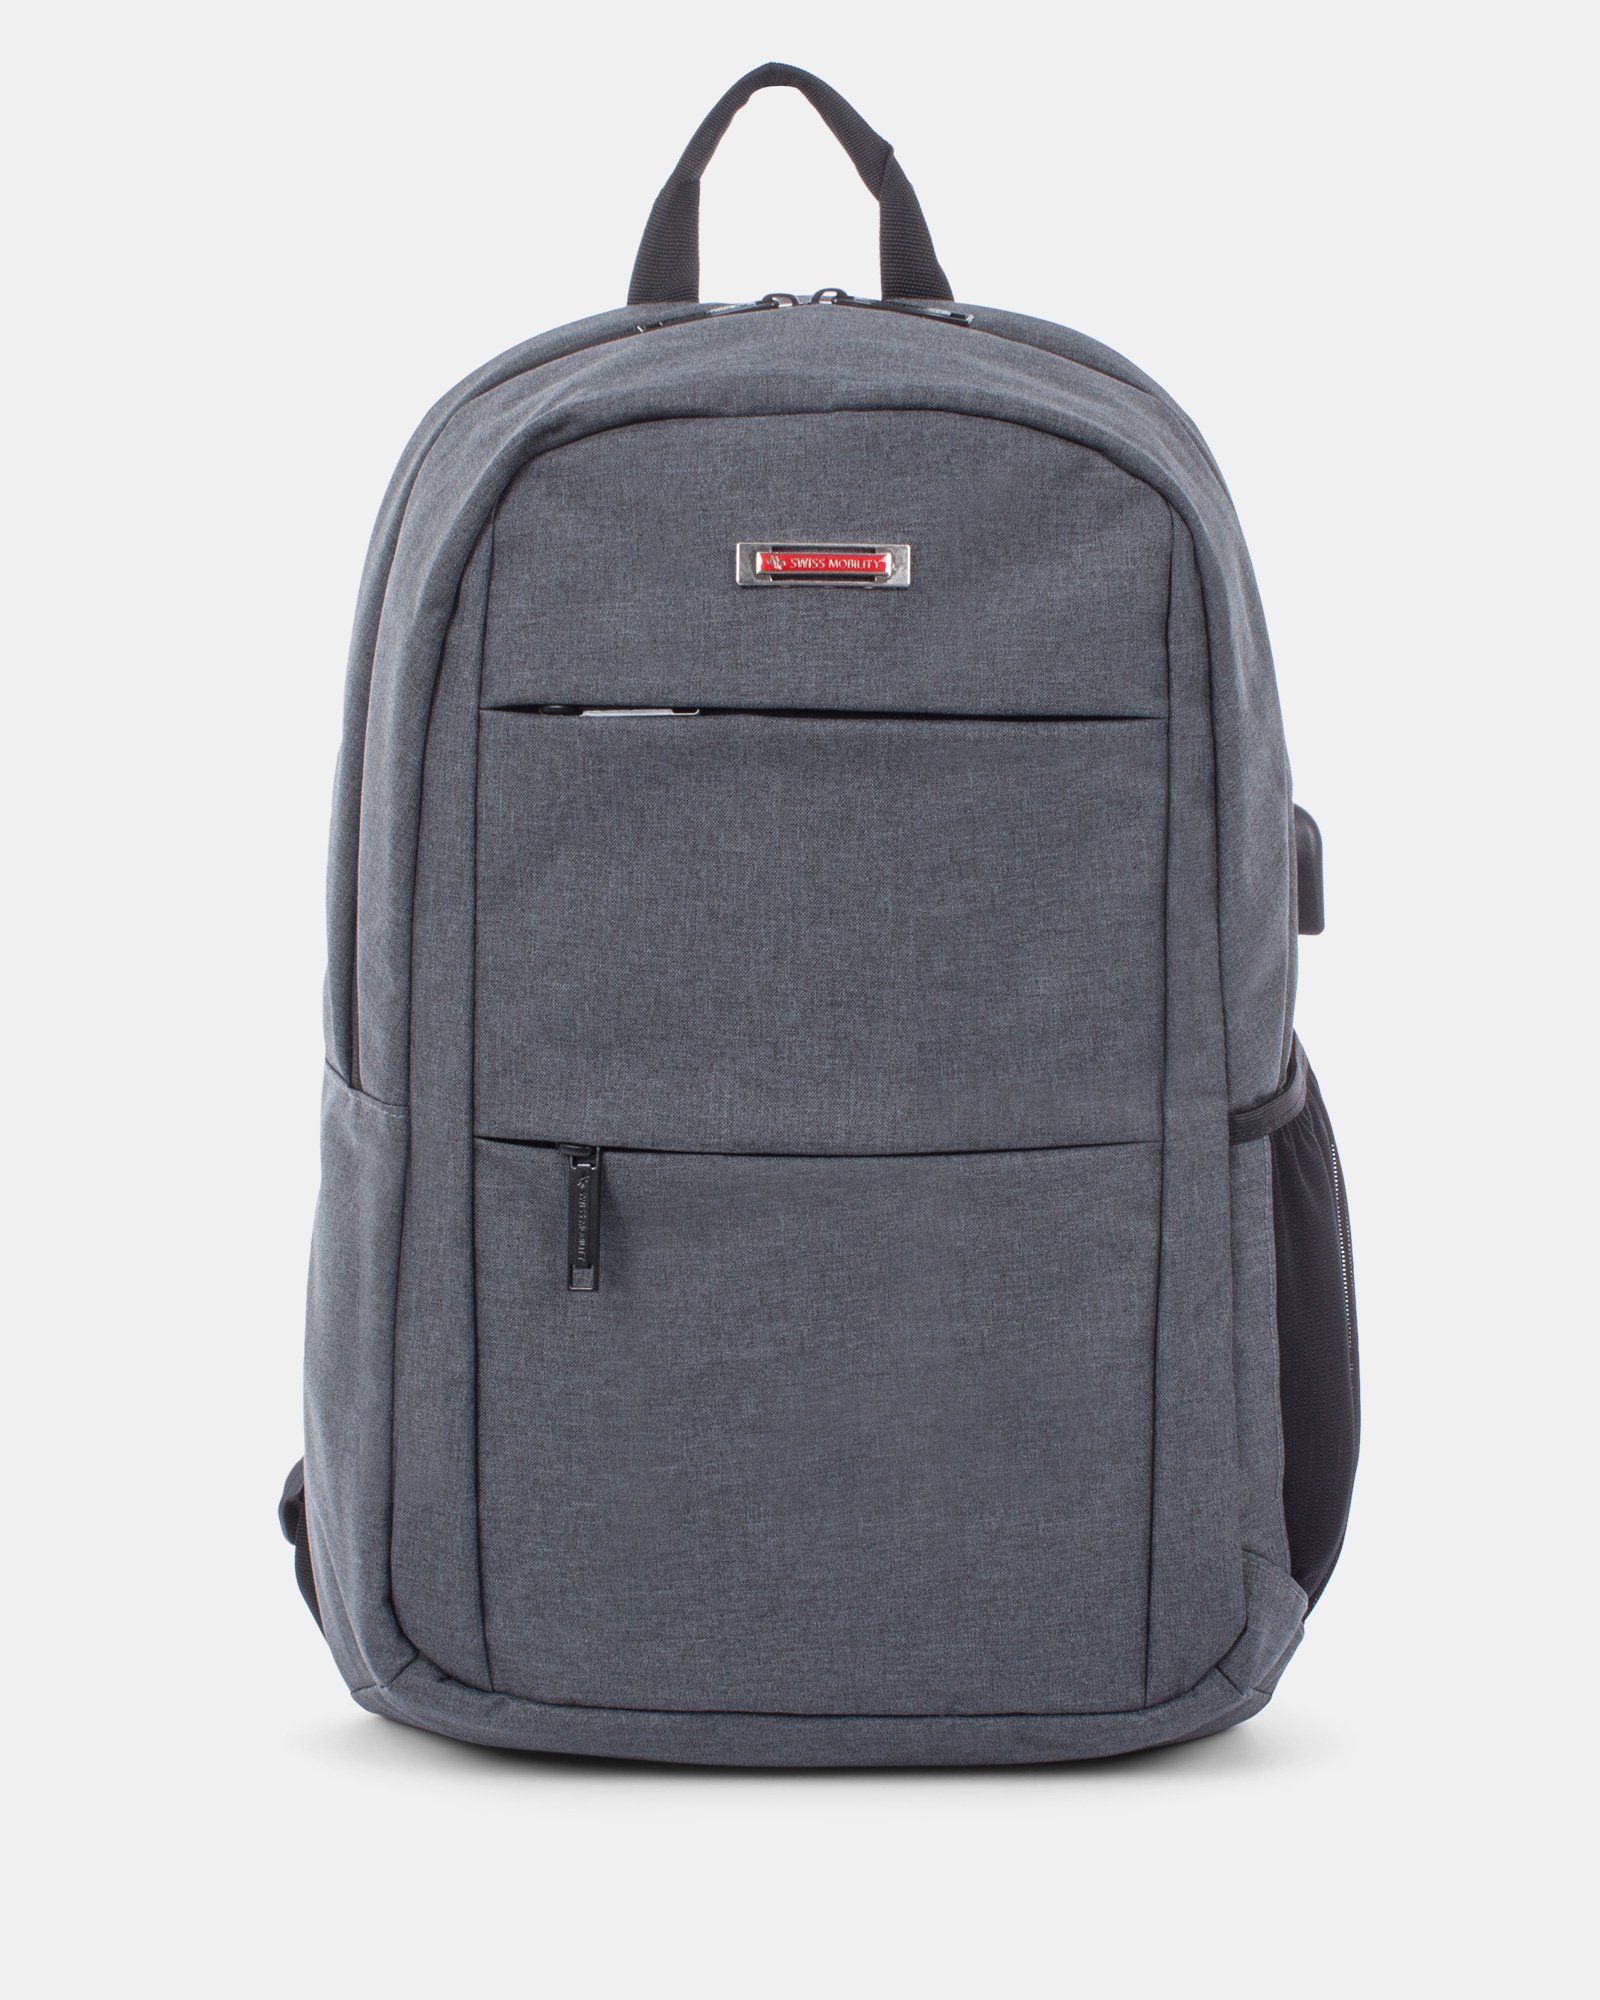 ELEVATE-Backpack - Swiss Mobility - Zoom